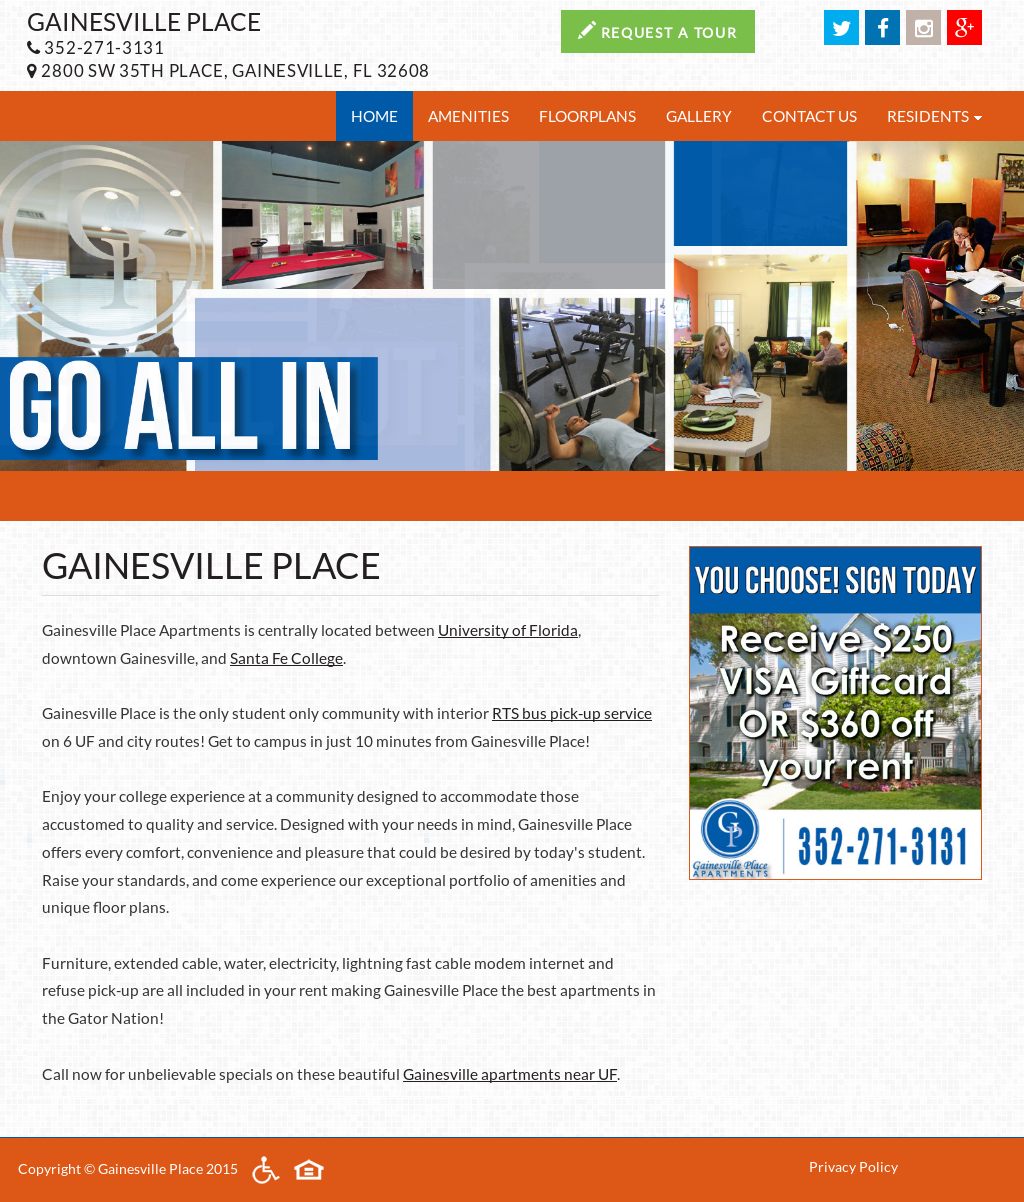 Gainesville Place Apartments : Choose the apartment that appeals to you the most.